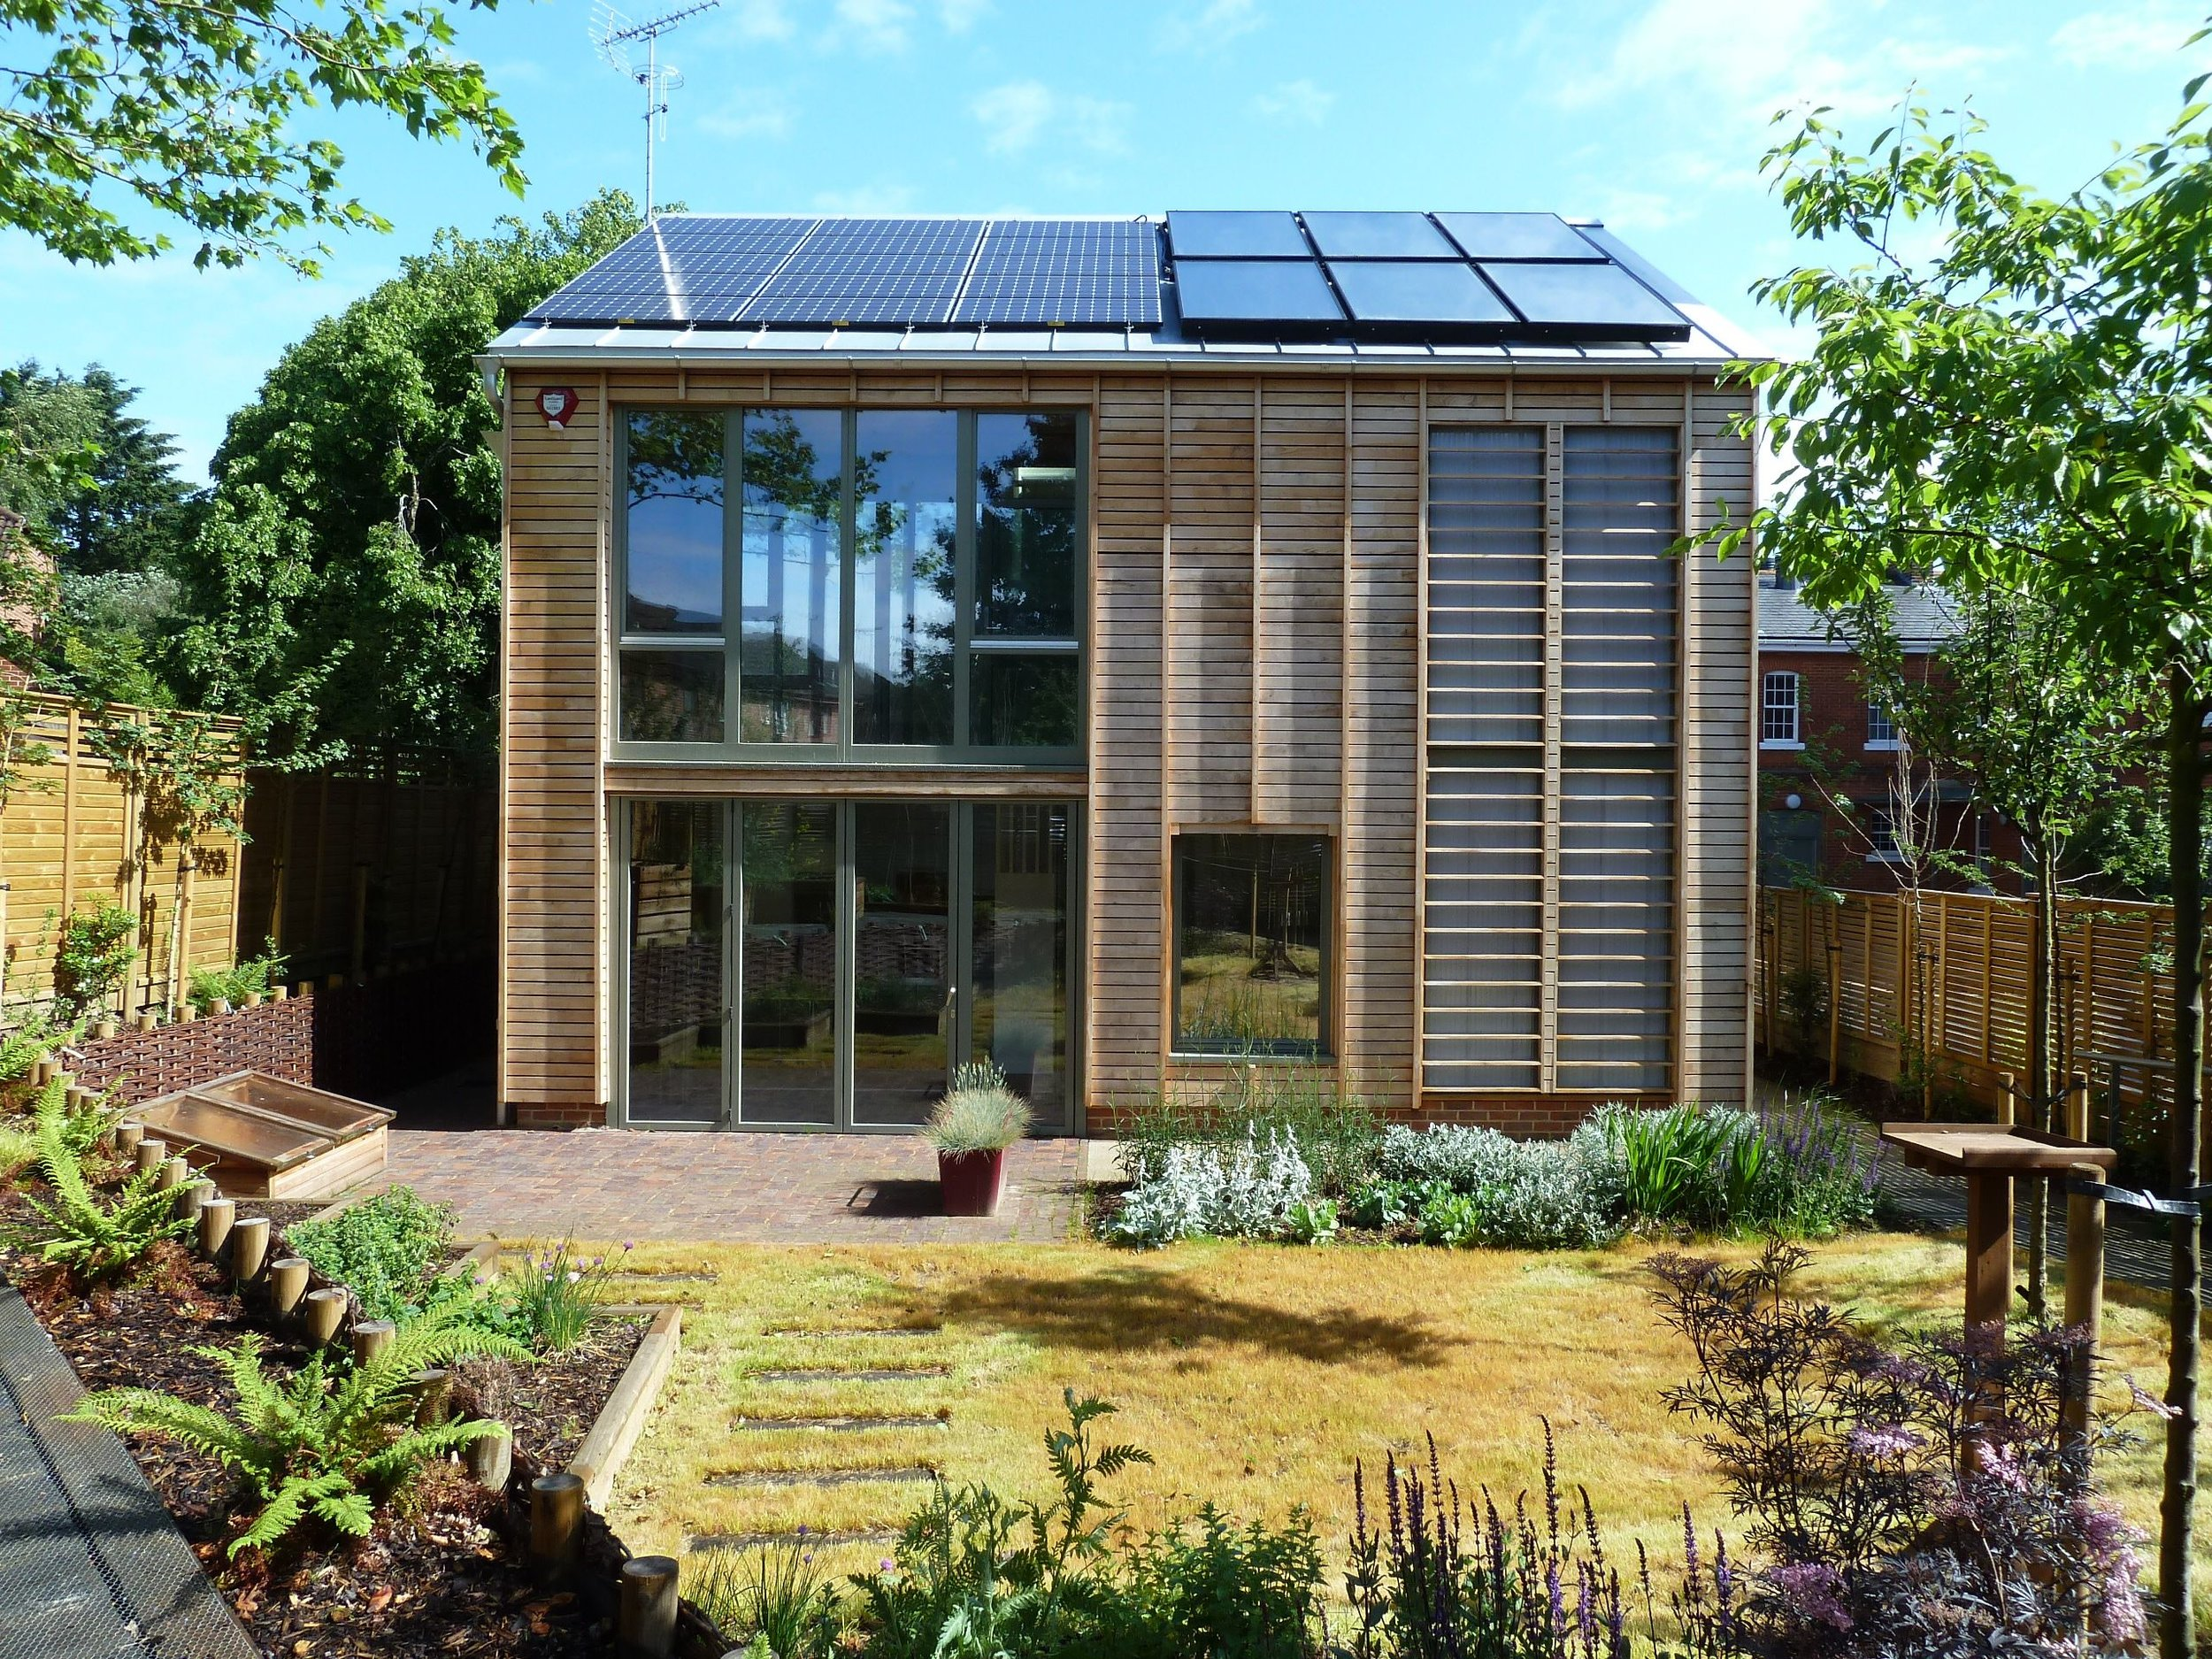 The ECO House - The Bordon Eco House is an innovative zero carbon house, the first in the UK to include inter-seasonal heat storage. The system includes a 9m3 buried thermal store which is used to store solar energy during the warmer months for the heating during the winter. The house design also includes an innovative trombe wall incorporating nanogel and clay blocks for thermal storage, winter garden, rainwater harvesting and a thermo ground-air heat exchanger for preheating the air in winter and cooling the air in summer.